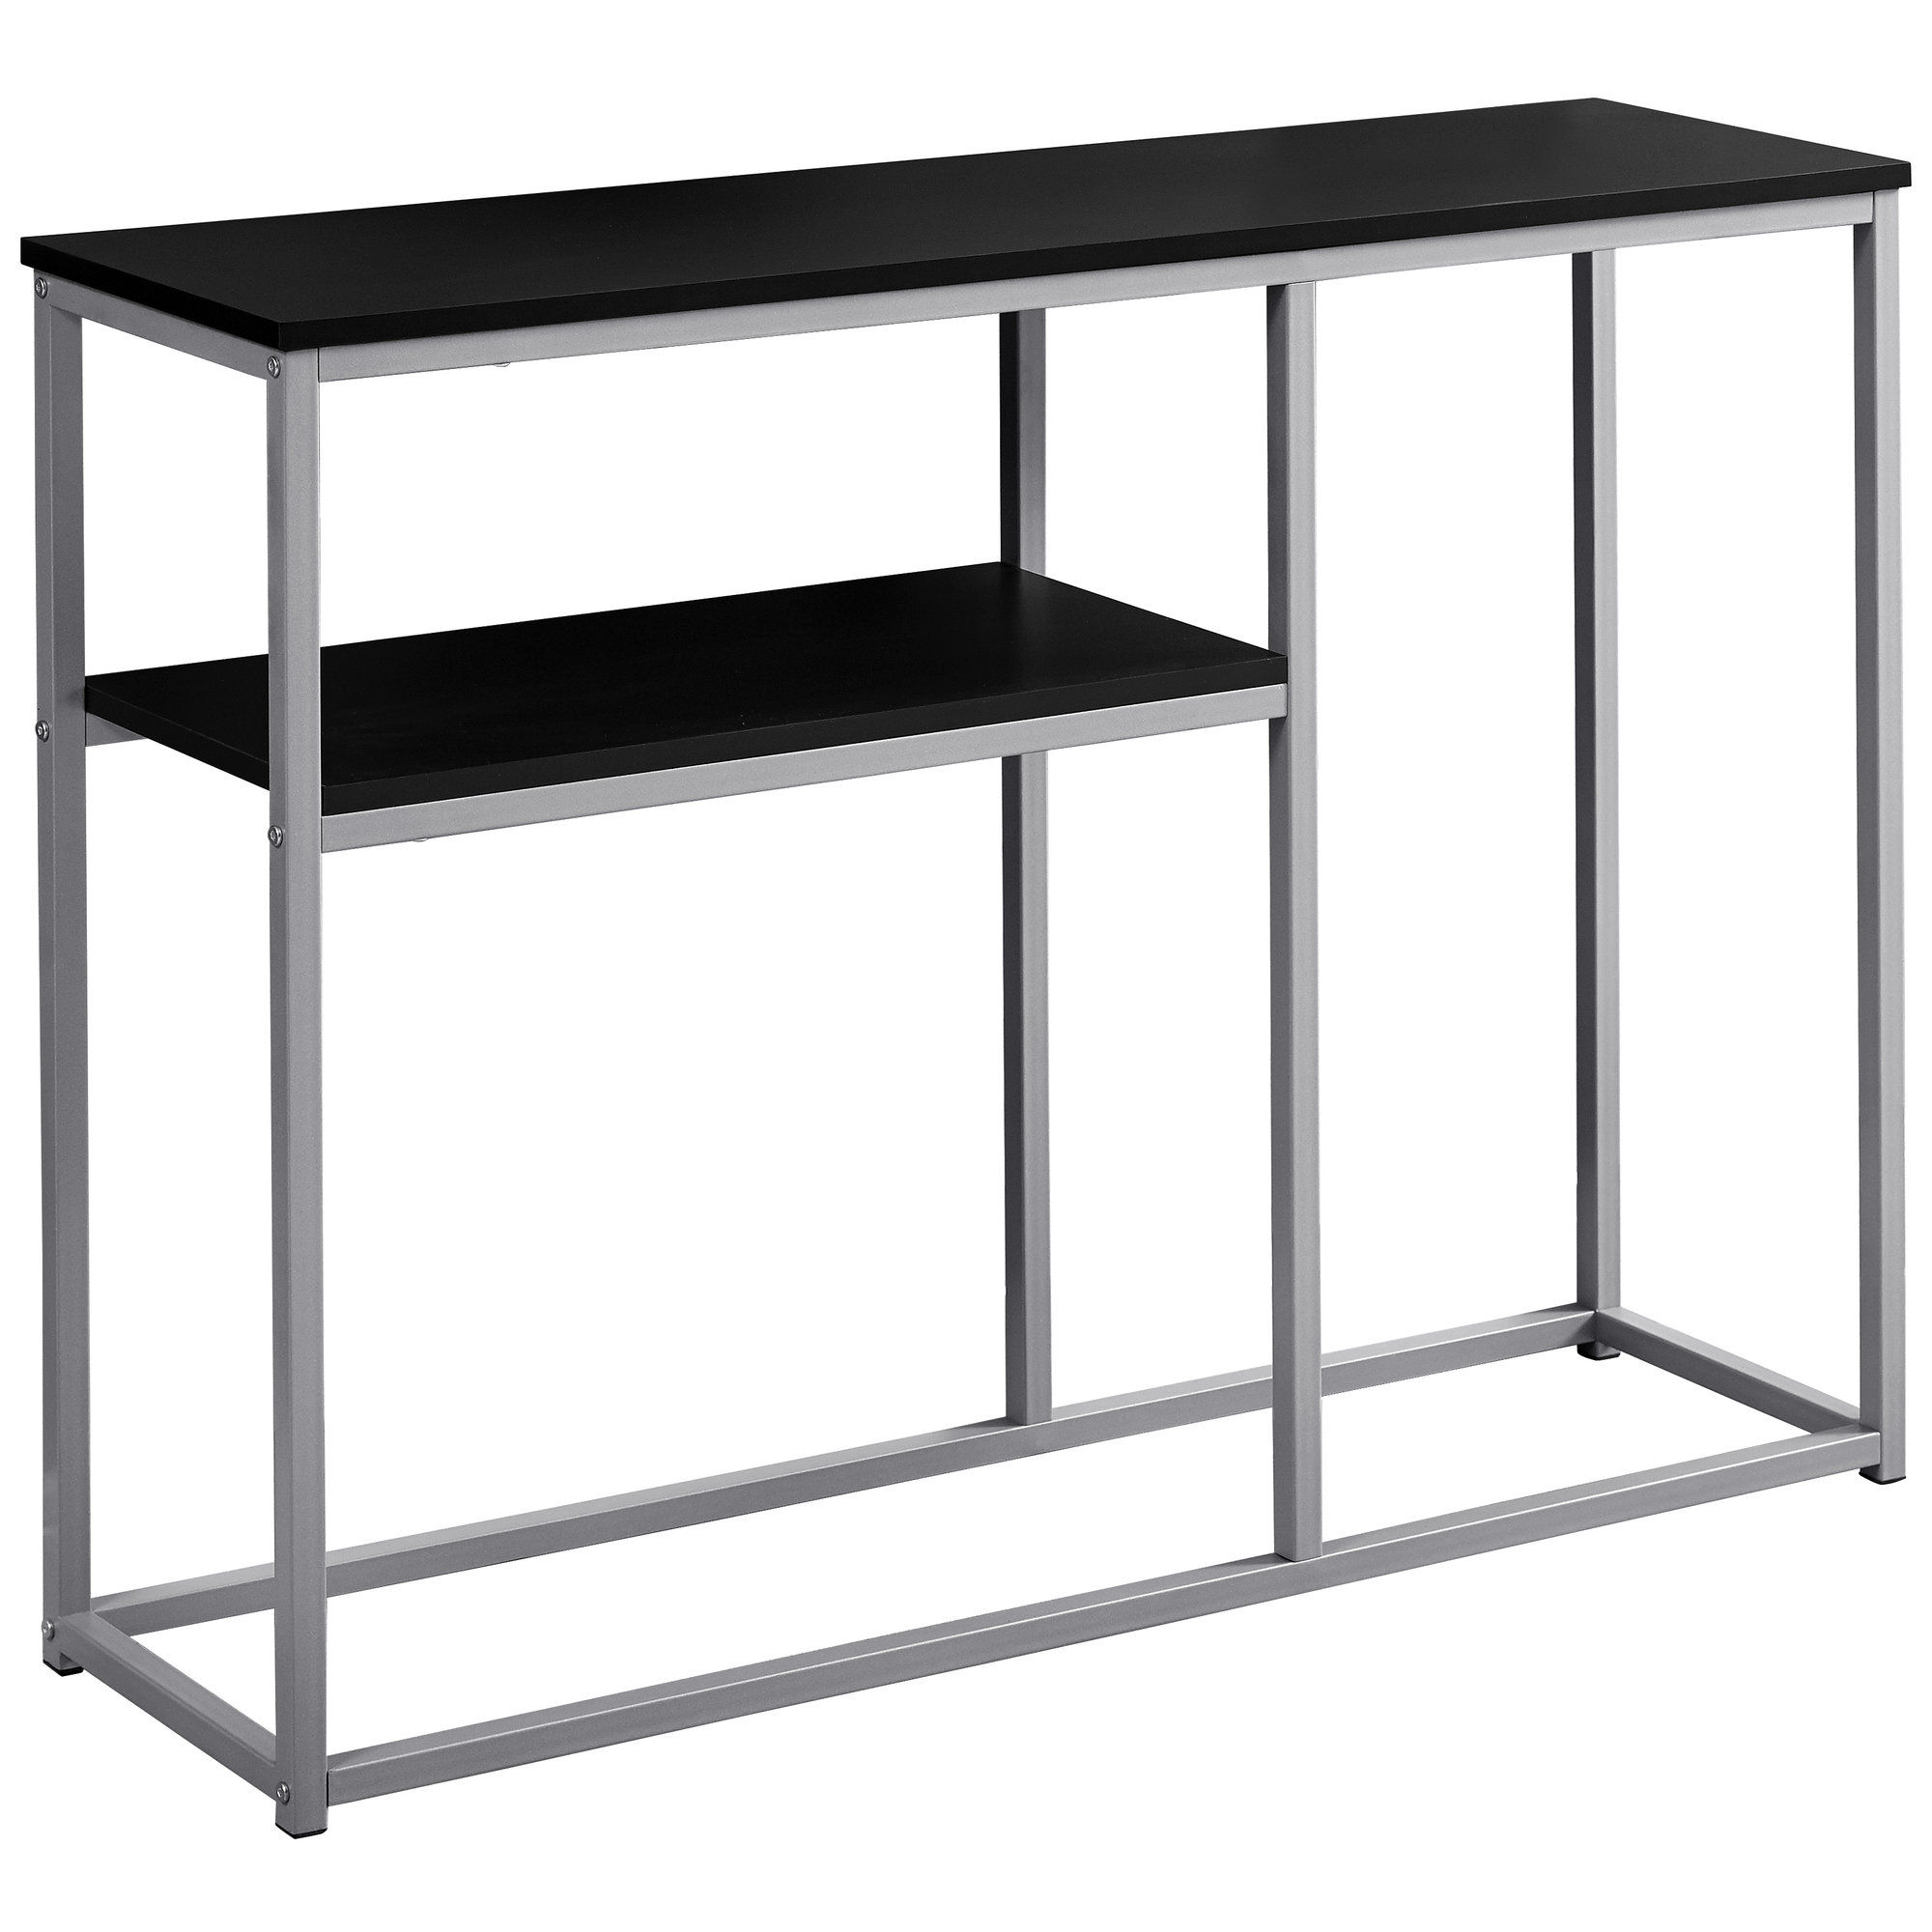 Awesome Monarch Specialties Black 42 Inch Sofa Table Machost Co Dining Chair Design Ideas Machostcouk